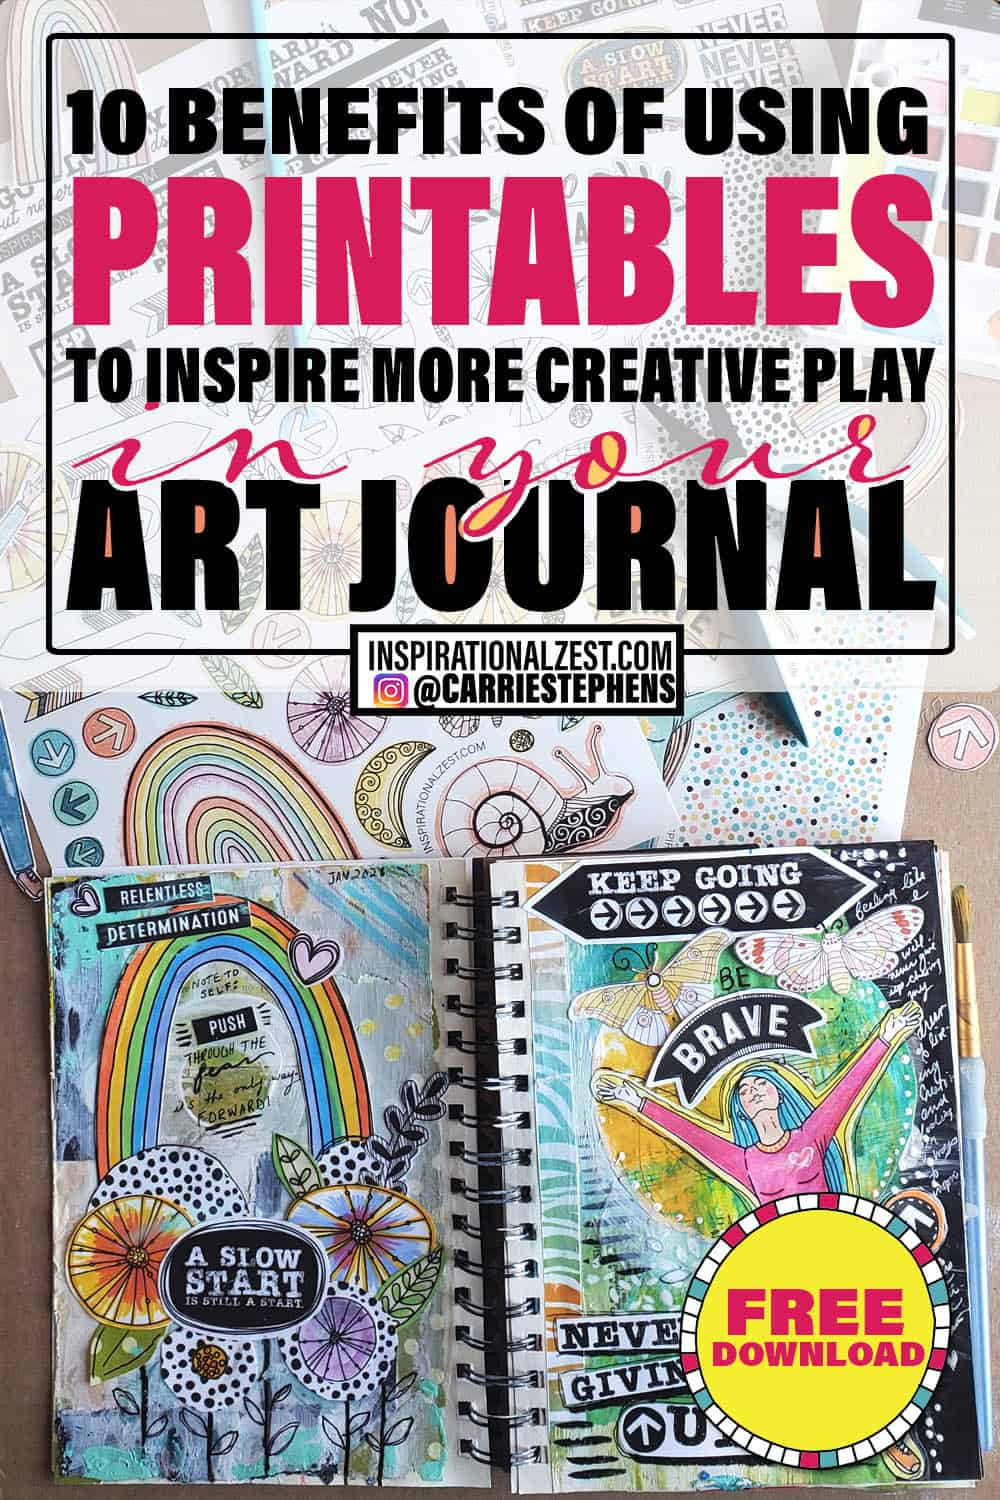 Art Journal Spread - 10 Benefits of using printables to inspire creative play in your art journal